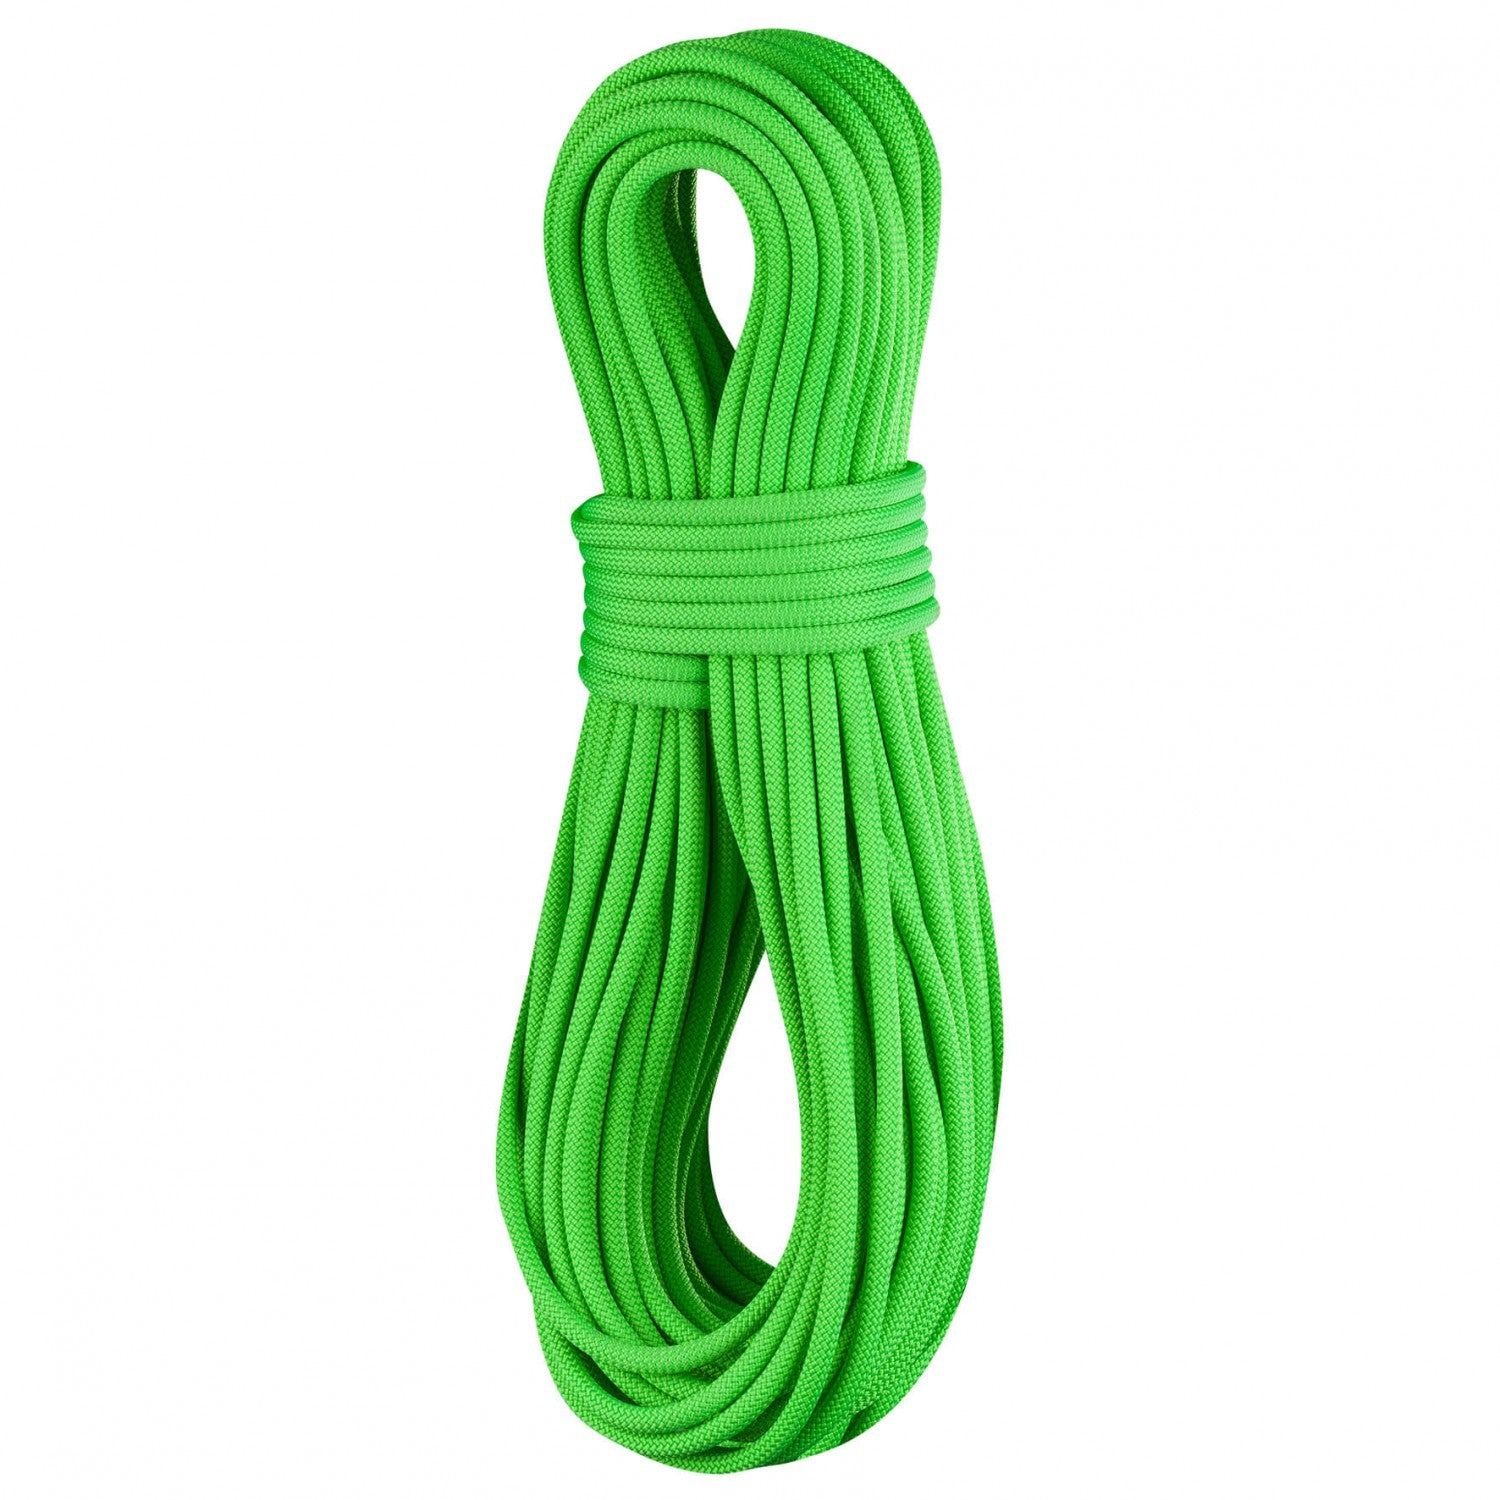 Edelrid Canary Pro Dry 8.6mm x 70m